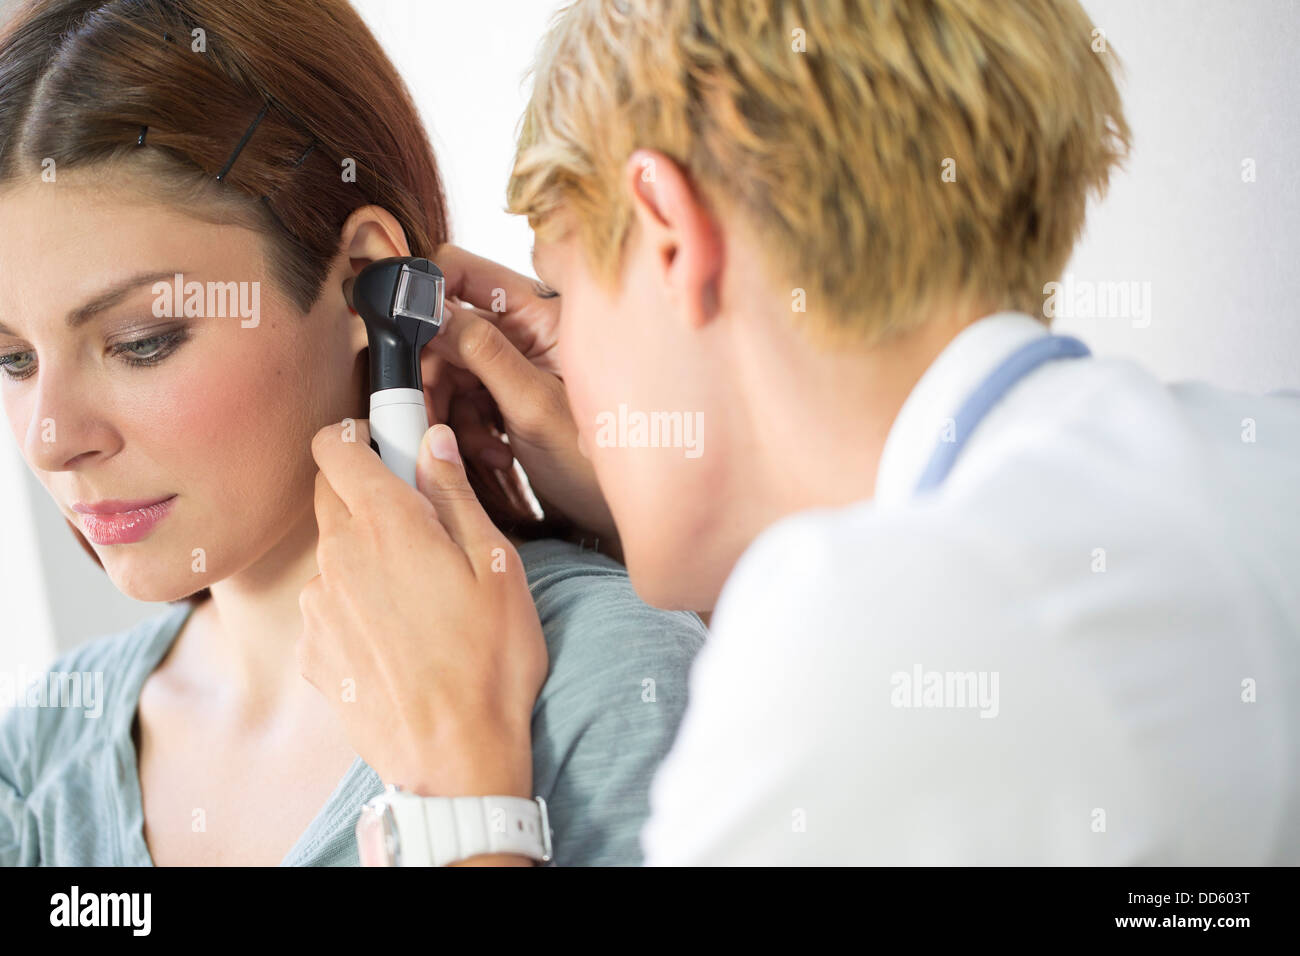 ENT physician Examining the Ear from Female Patient Stock Photo